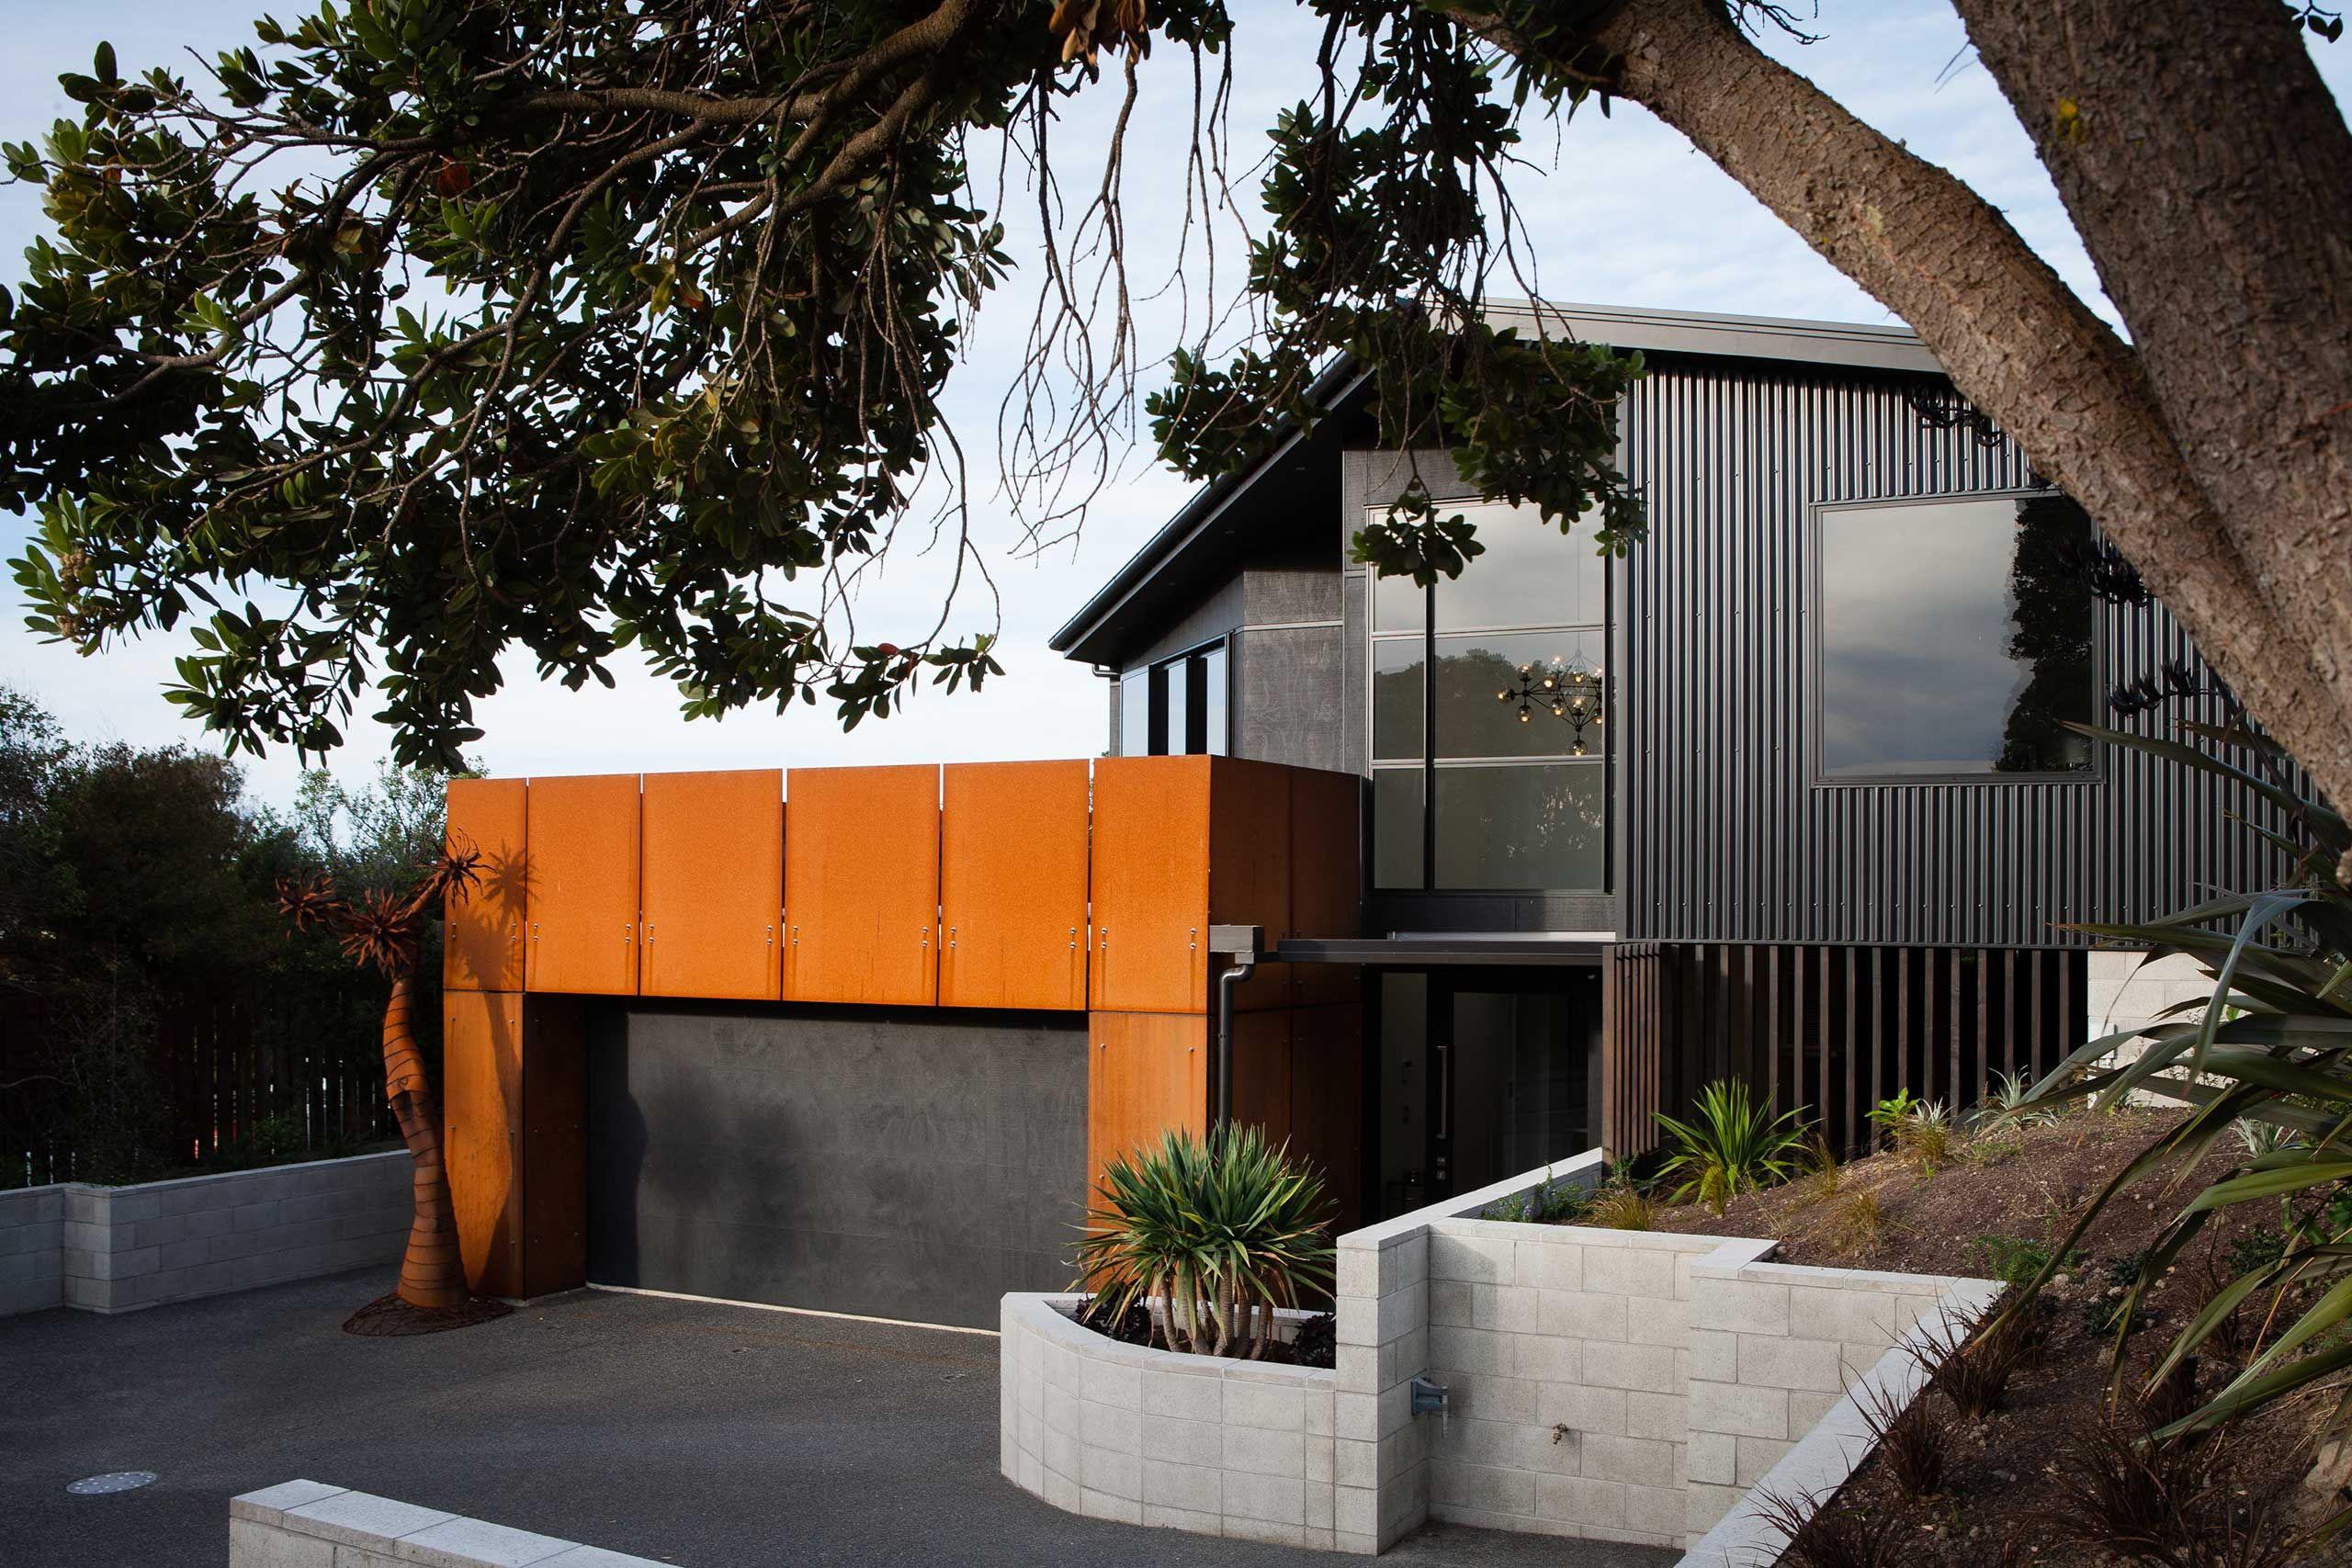 Best Image Result For Black Colour Steel And Plaster Cladding 400 x 300